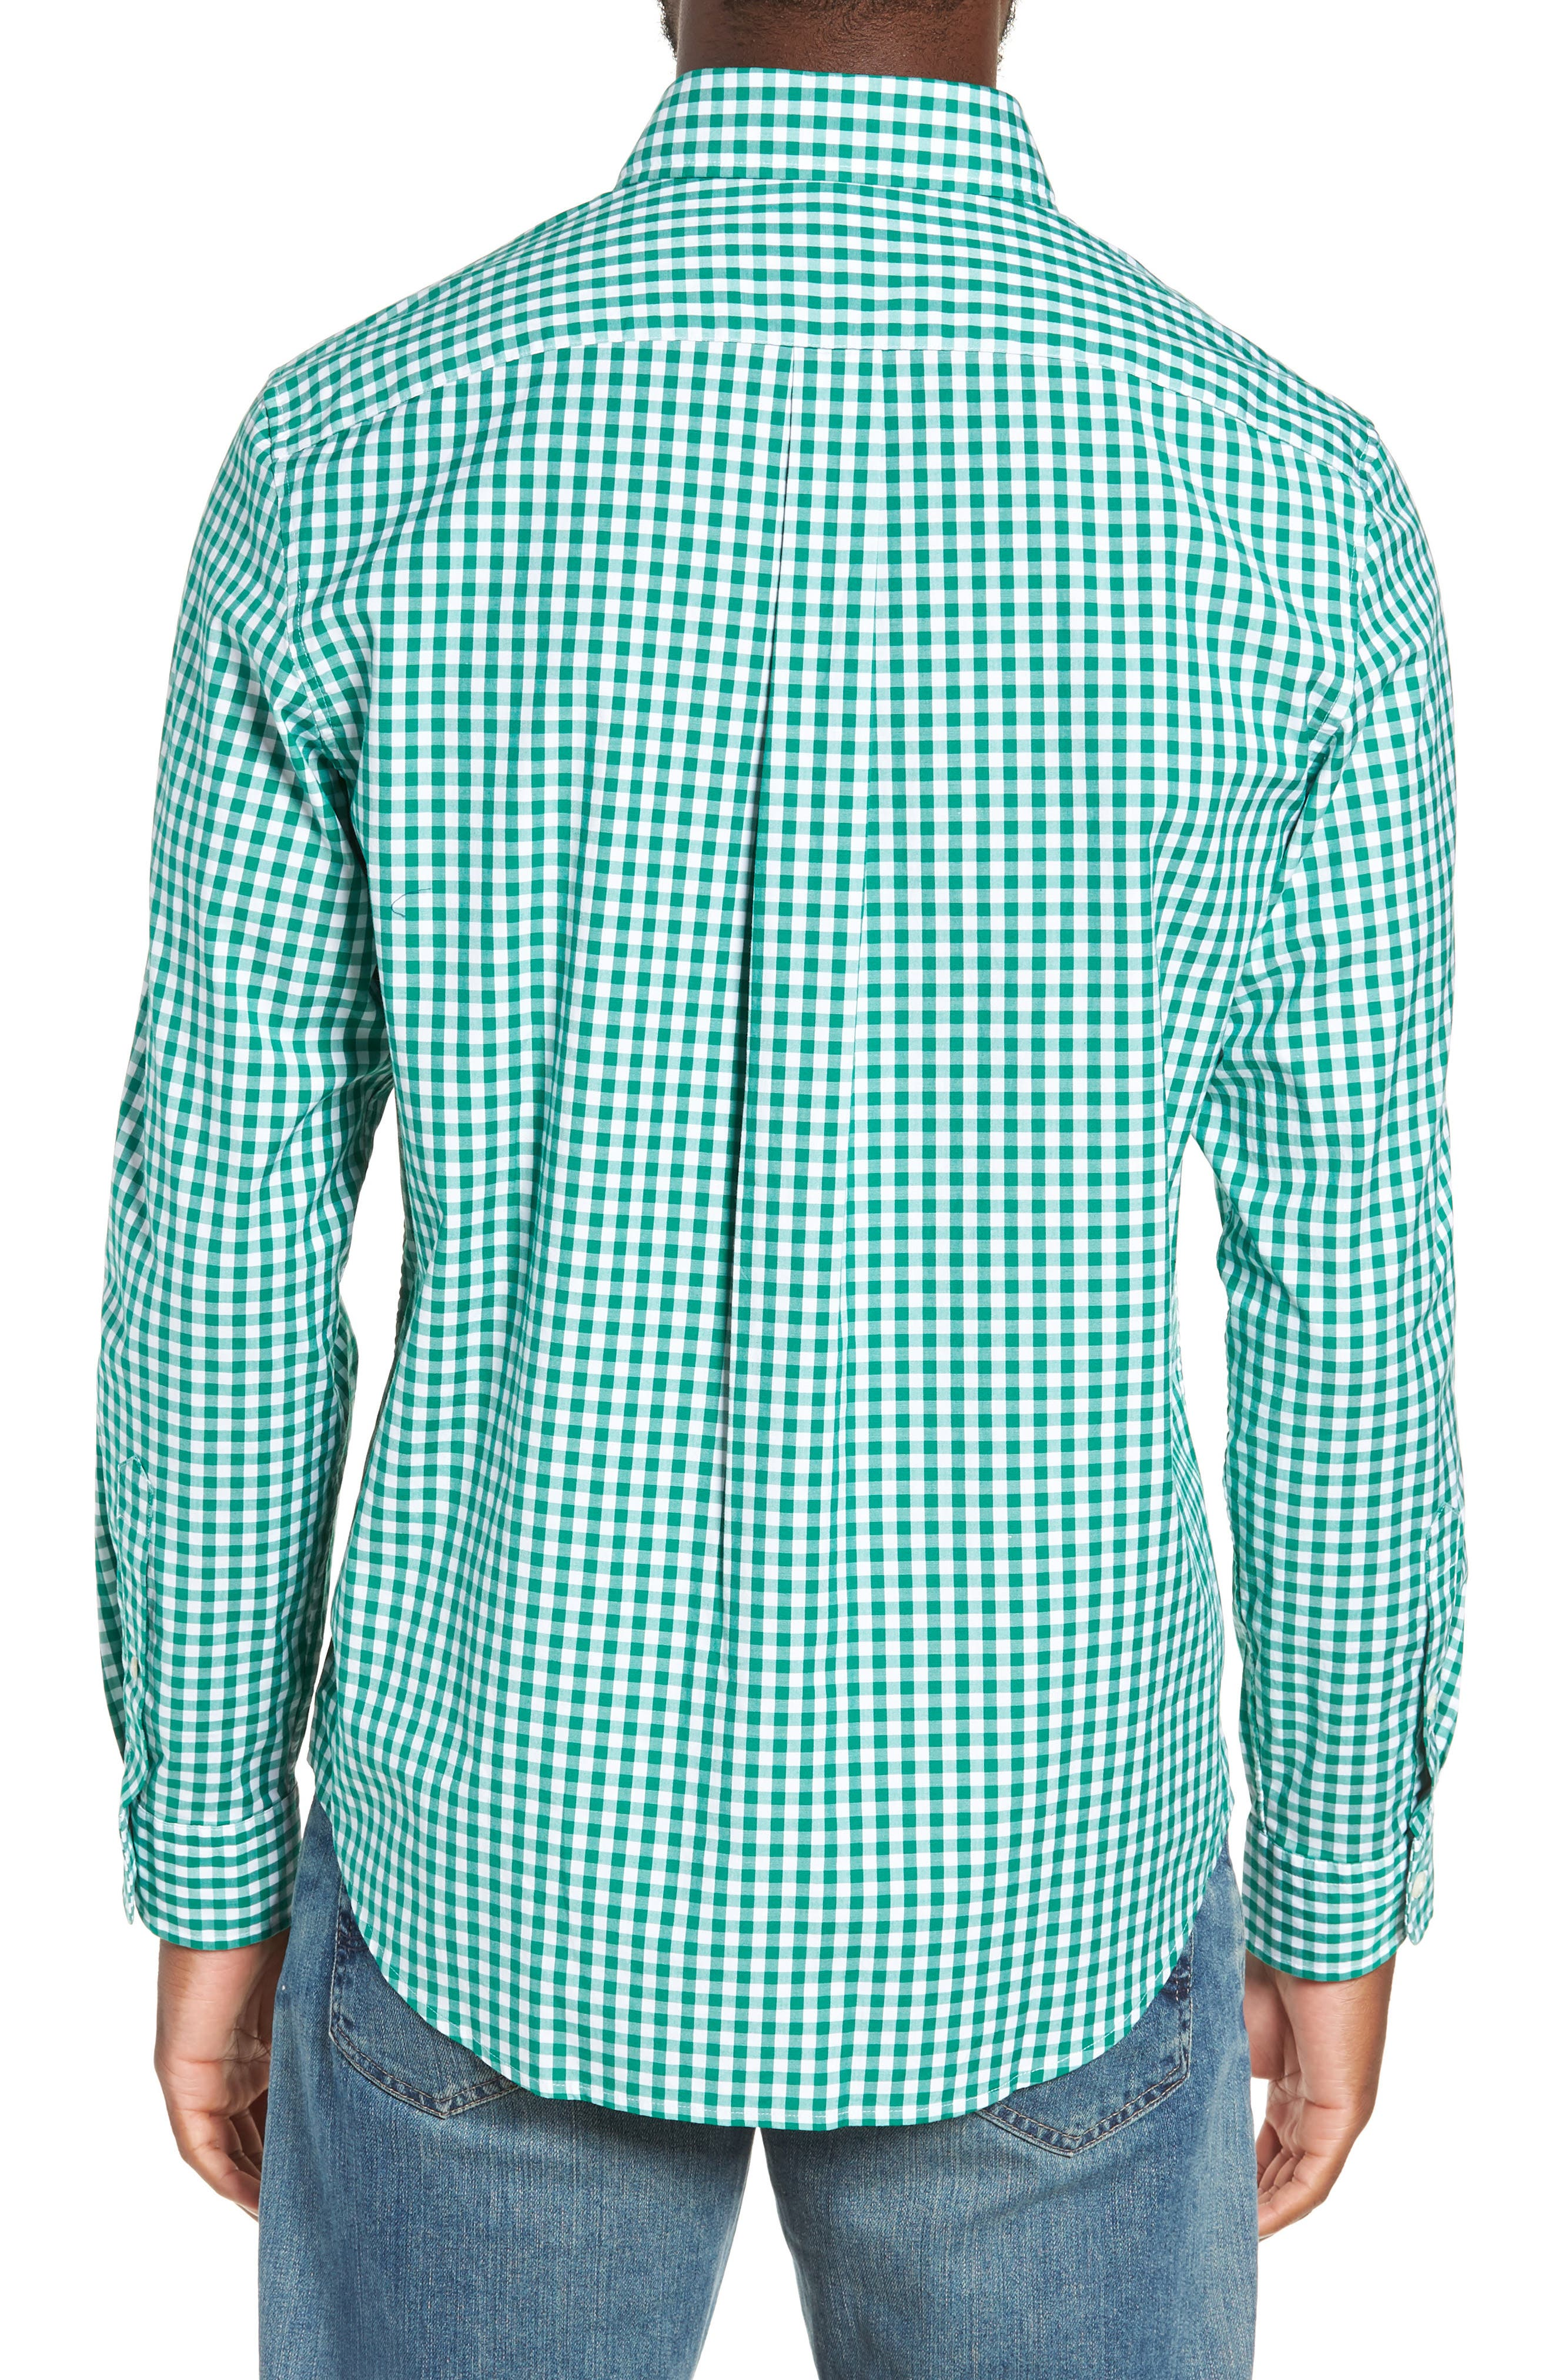 Carleton Classic Fit Gingham Sport Shirt,                             Alternate thumbnail 3, color,                             GREEN MEADOW